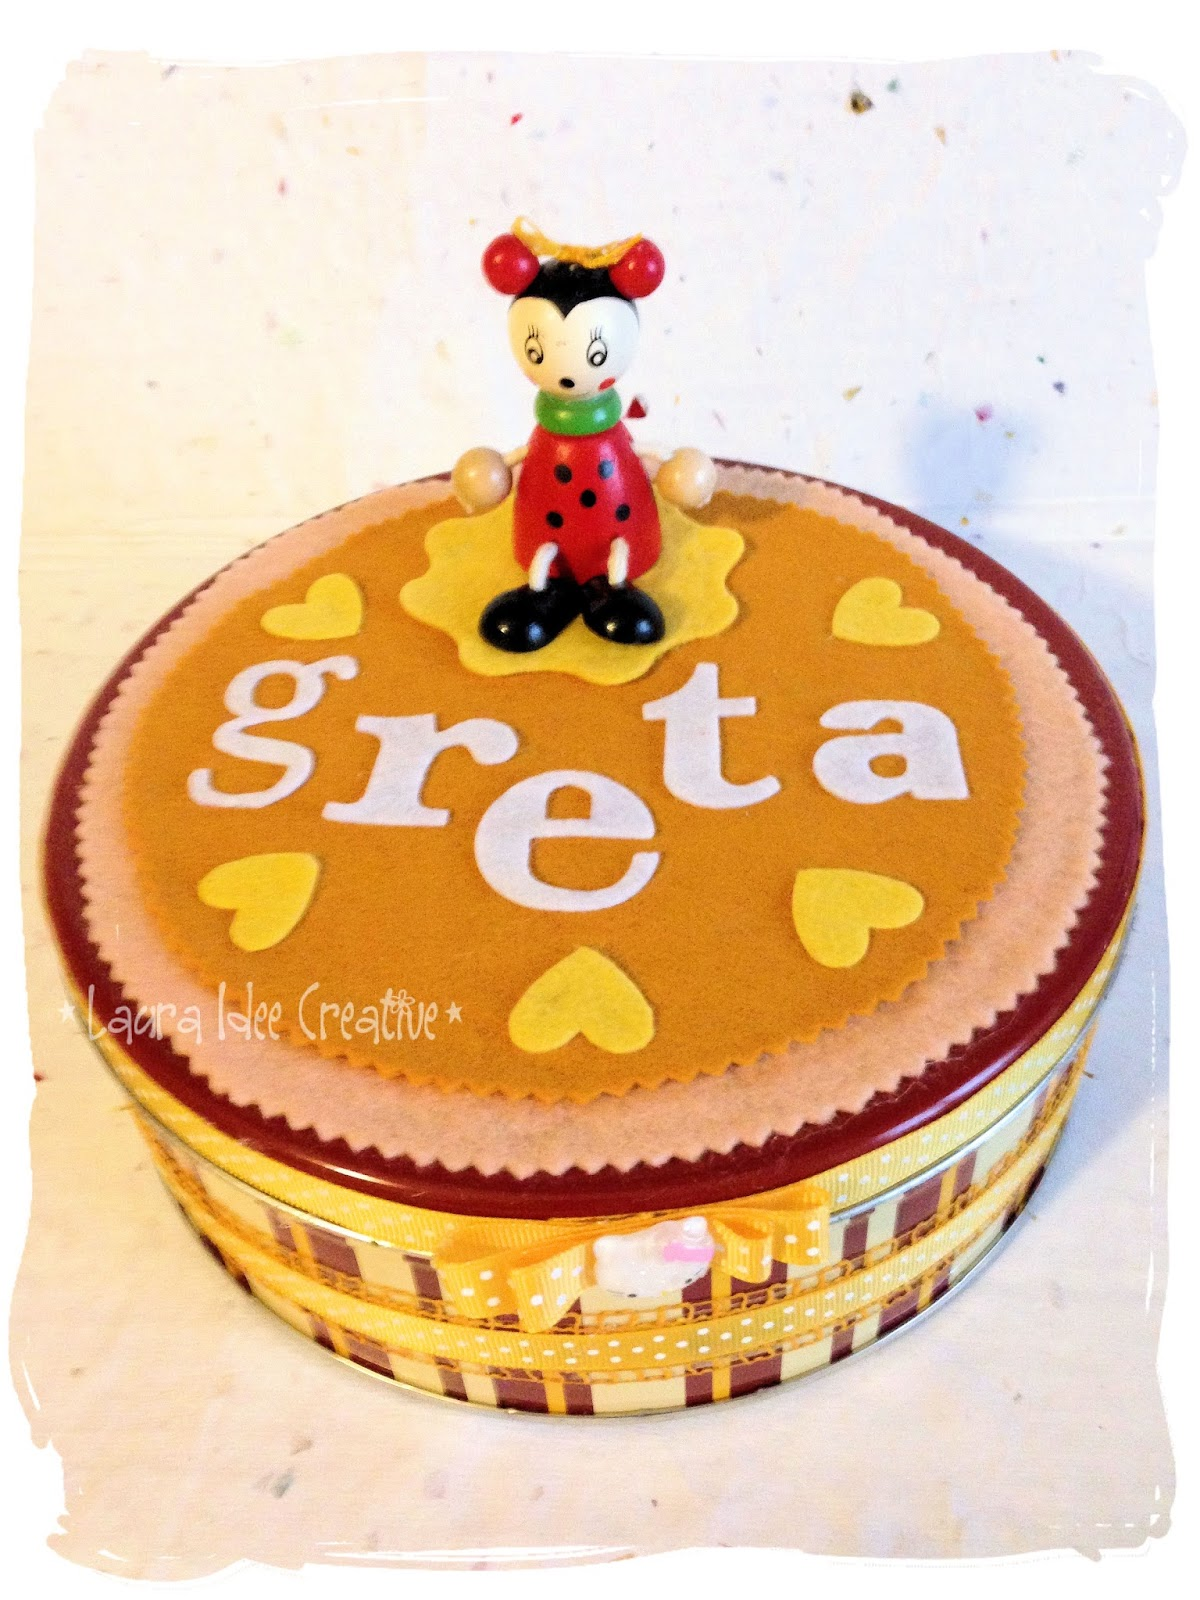 Laura idee creative scatole decorate per compleanno o idea regalo - Scatole di legno decorate ...